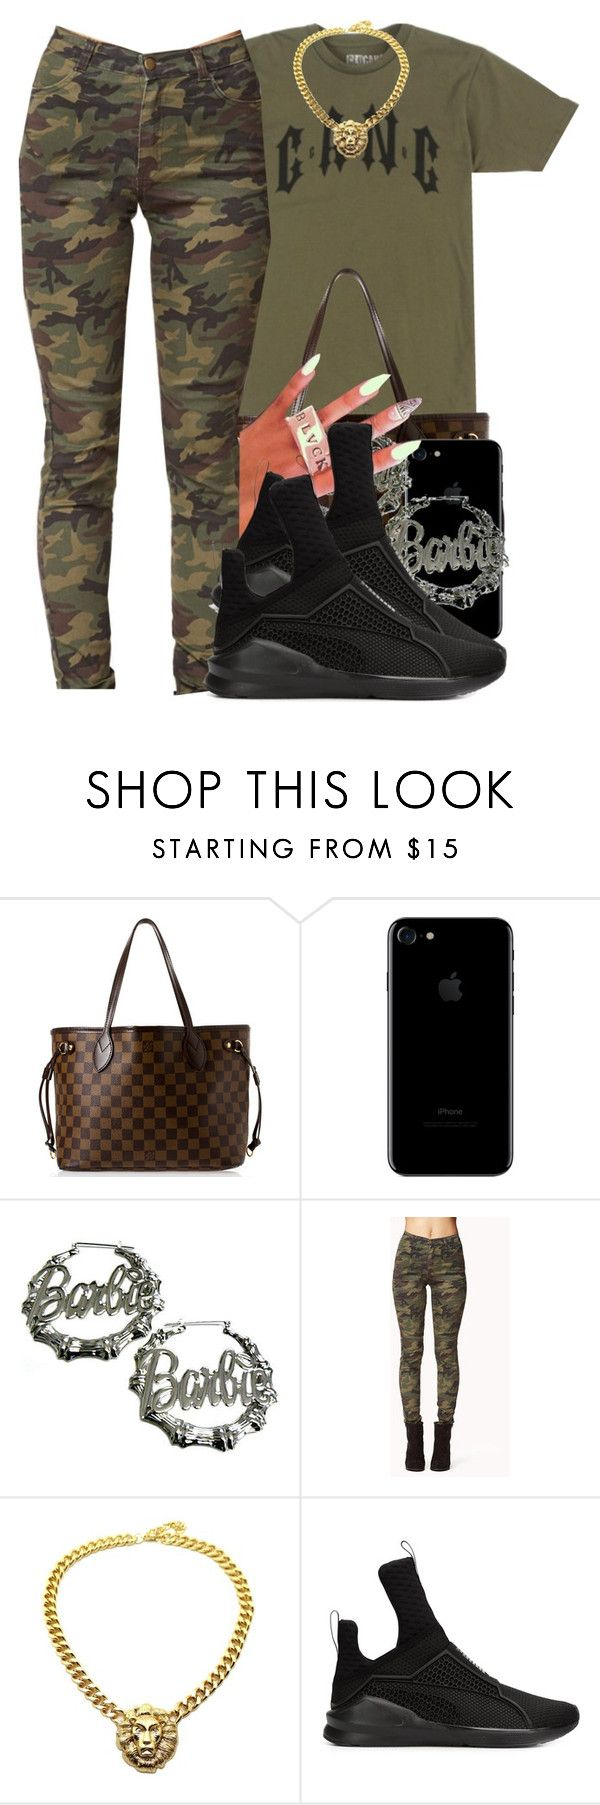 """G A N G"" by polyvoreitems5 ❤ liked on Polyvore featuring Louis Vuitton, Nicki Minaj, Forever 21 and Puma"